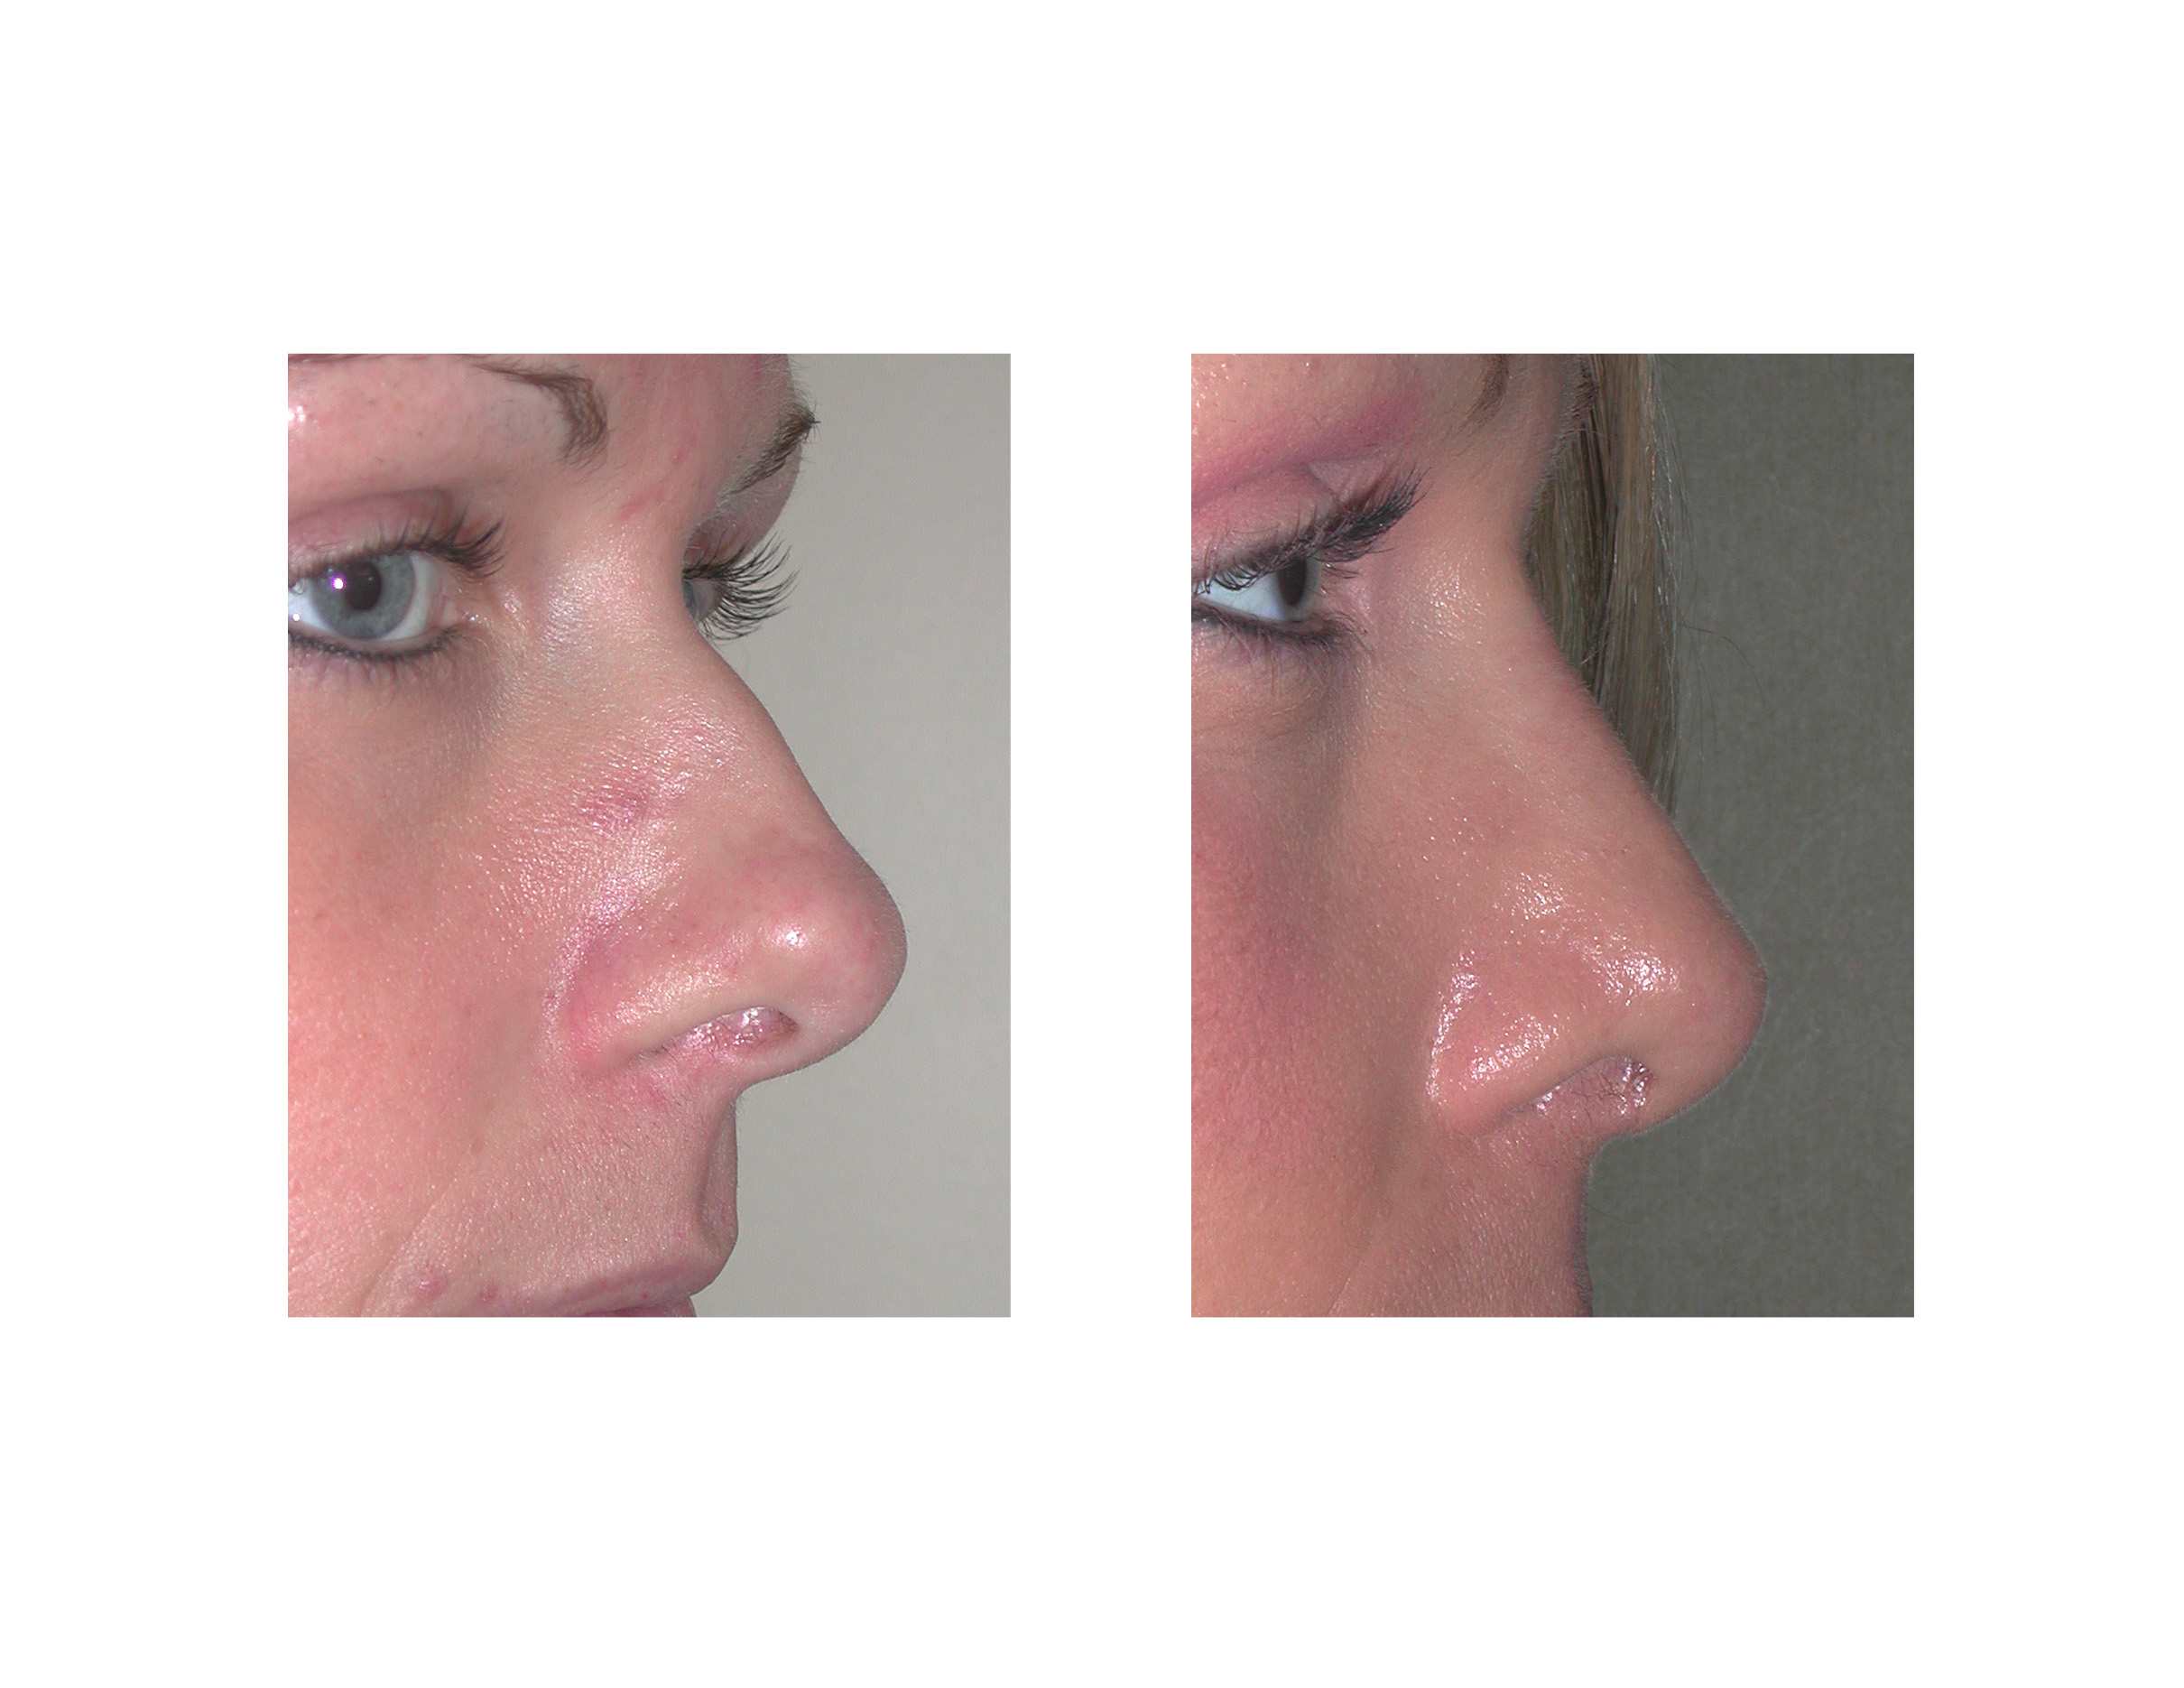 Case Study: Rhinoplasty for the Boxy Tip - Explore Plastic Surgery